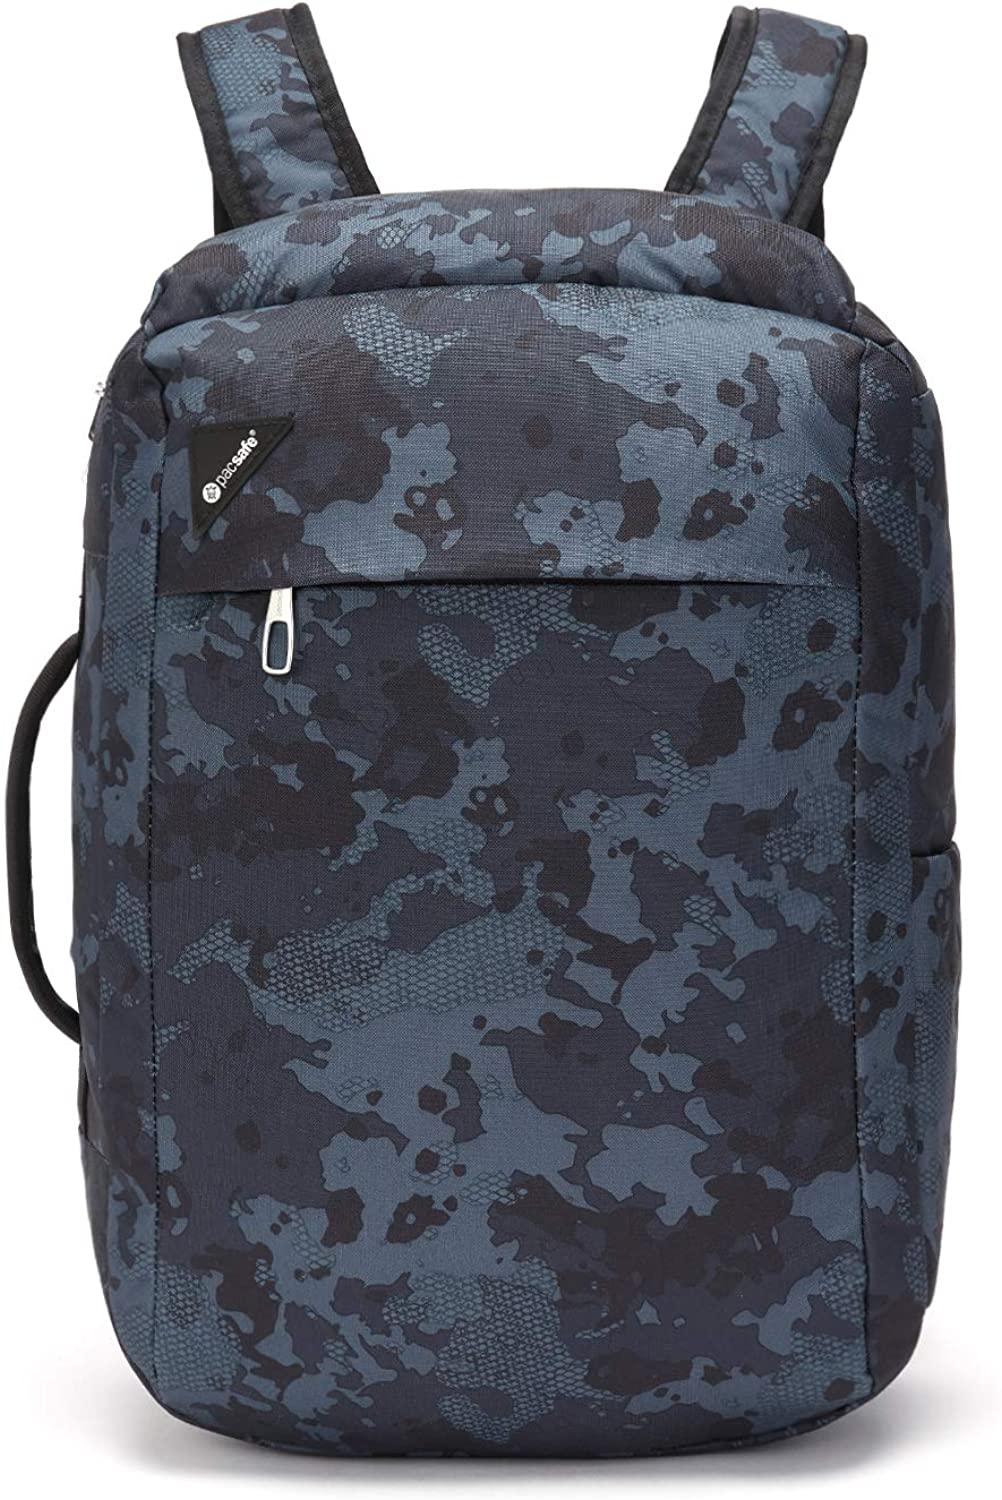 PacSafe Vibe 28 Liter Anti Theft Commuter Backpack